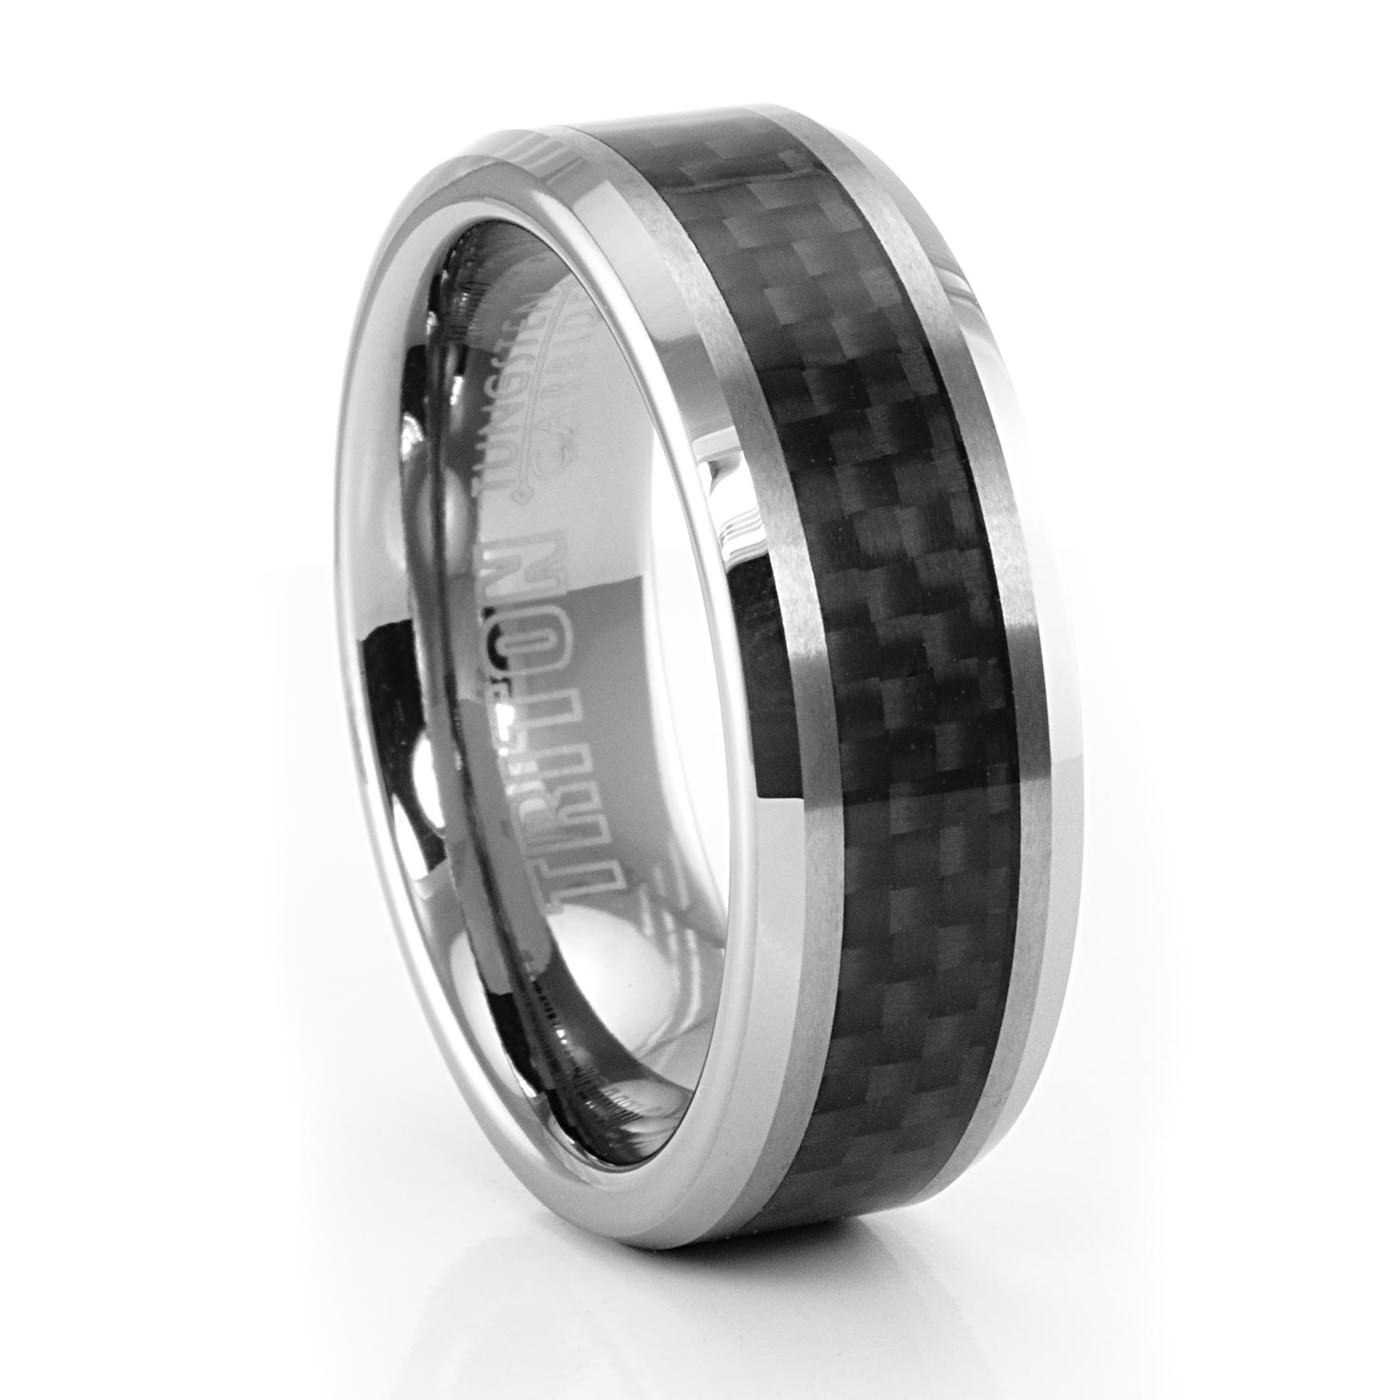 wedding all ring bands carbon carbonfiber rings fiber index